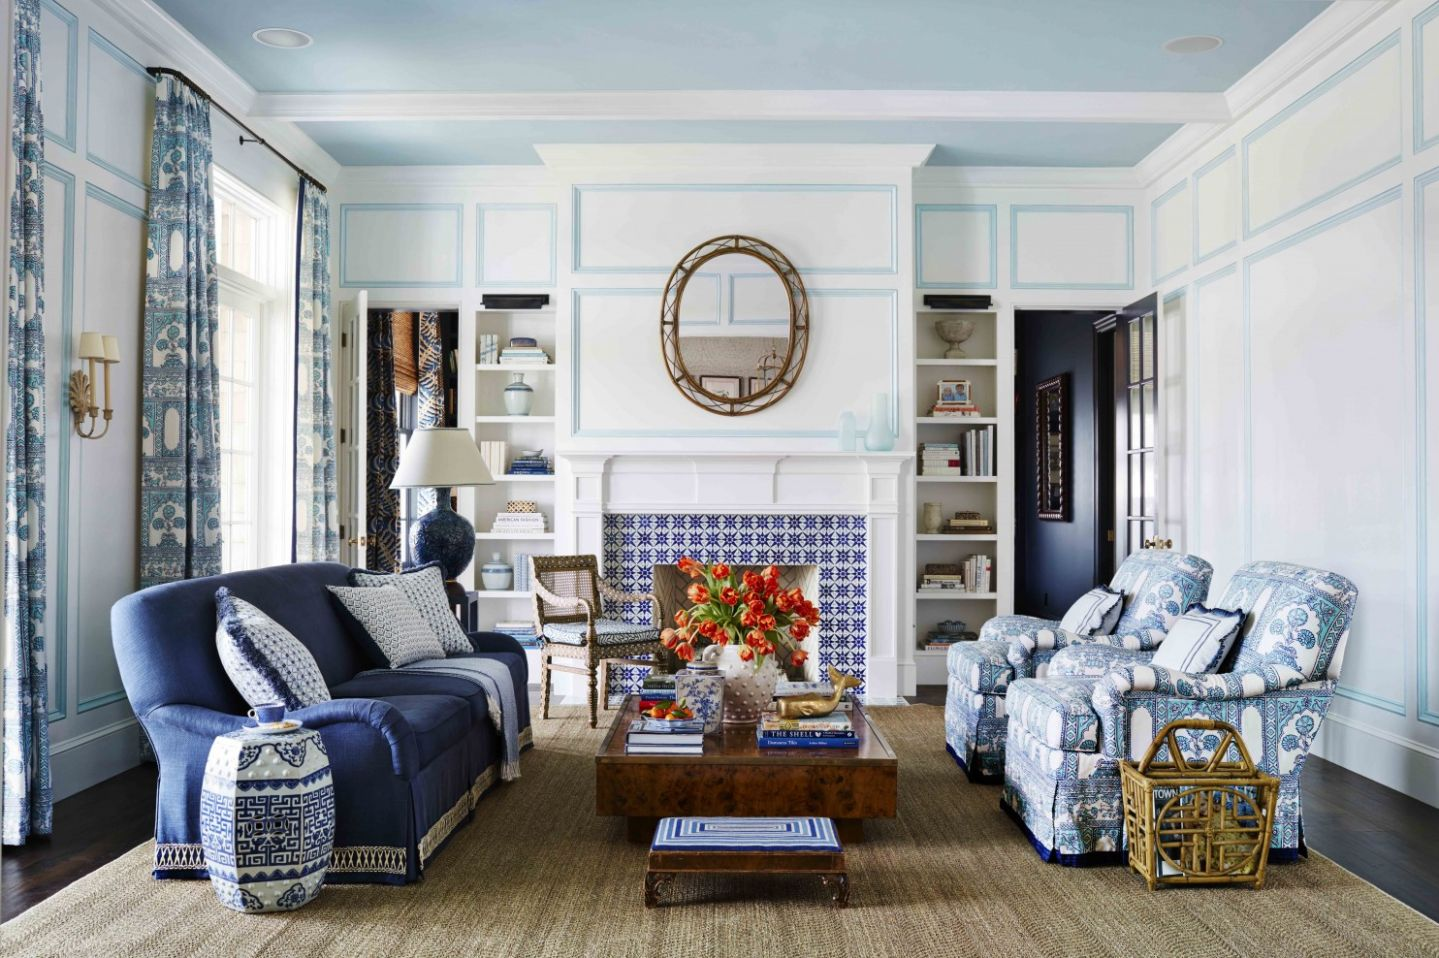 House Beautiful: Editor Sophie Donelson looks back at 8 years ..